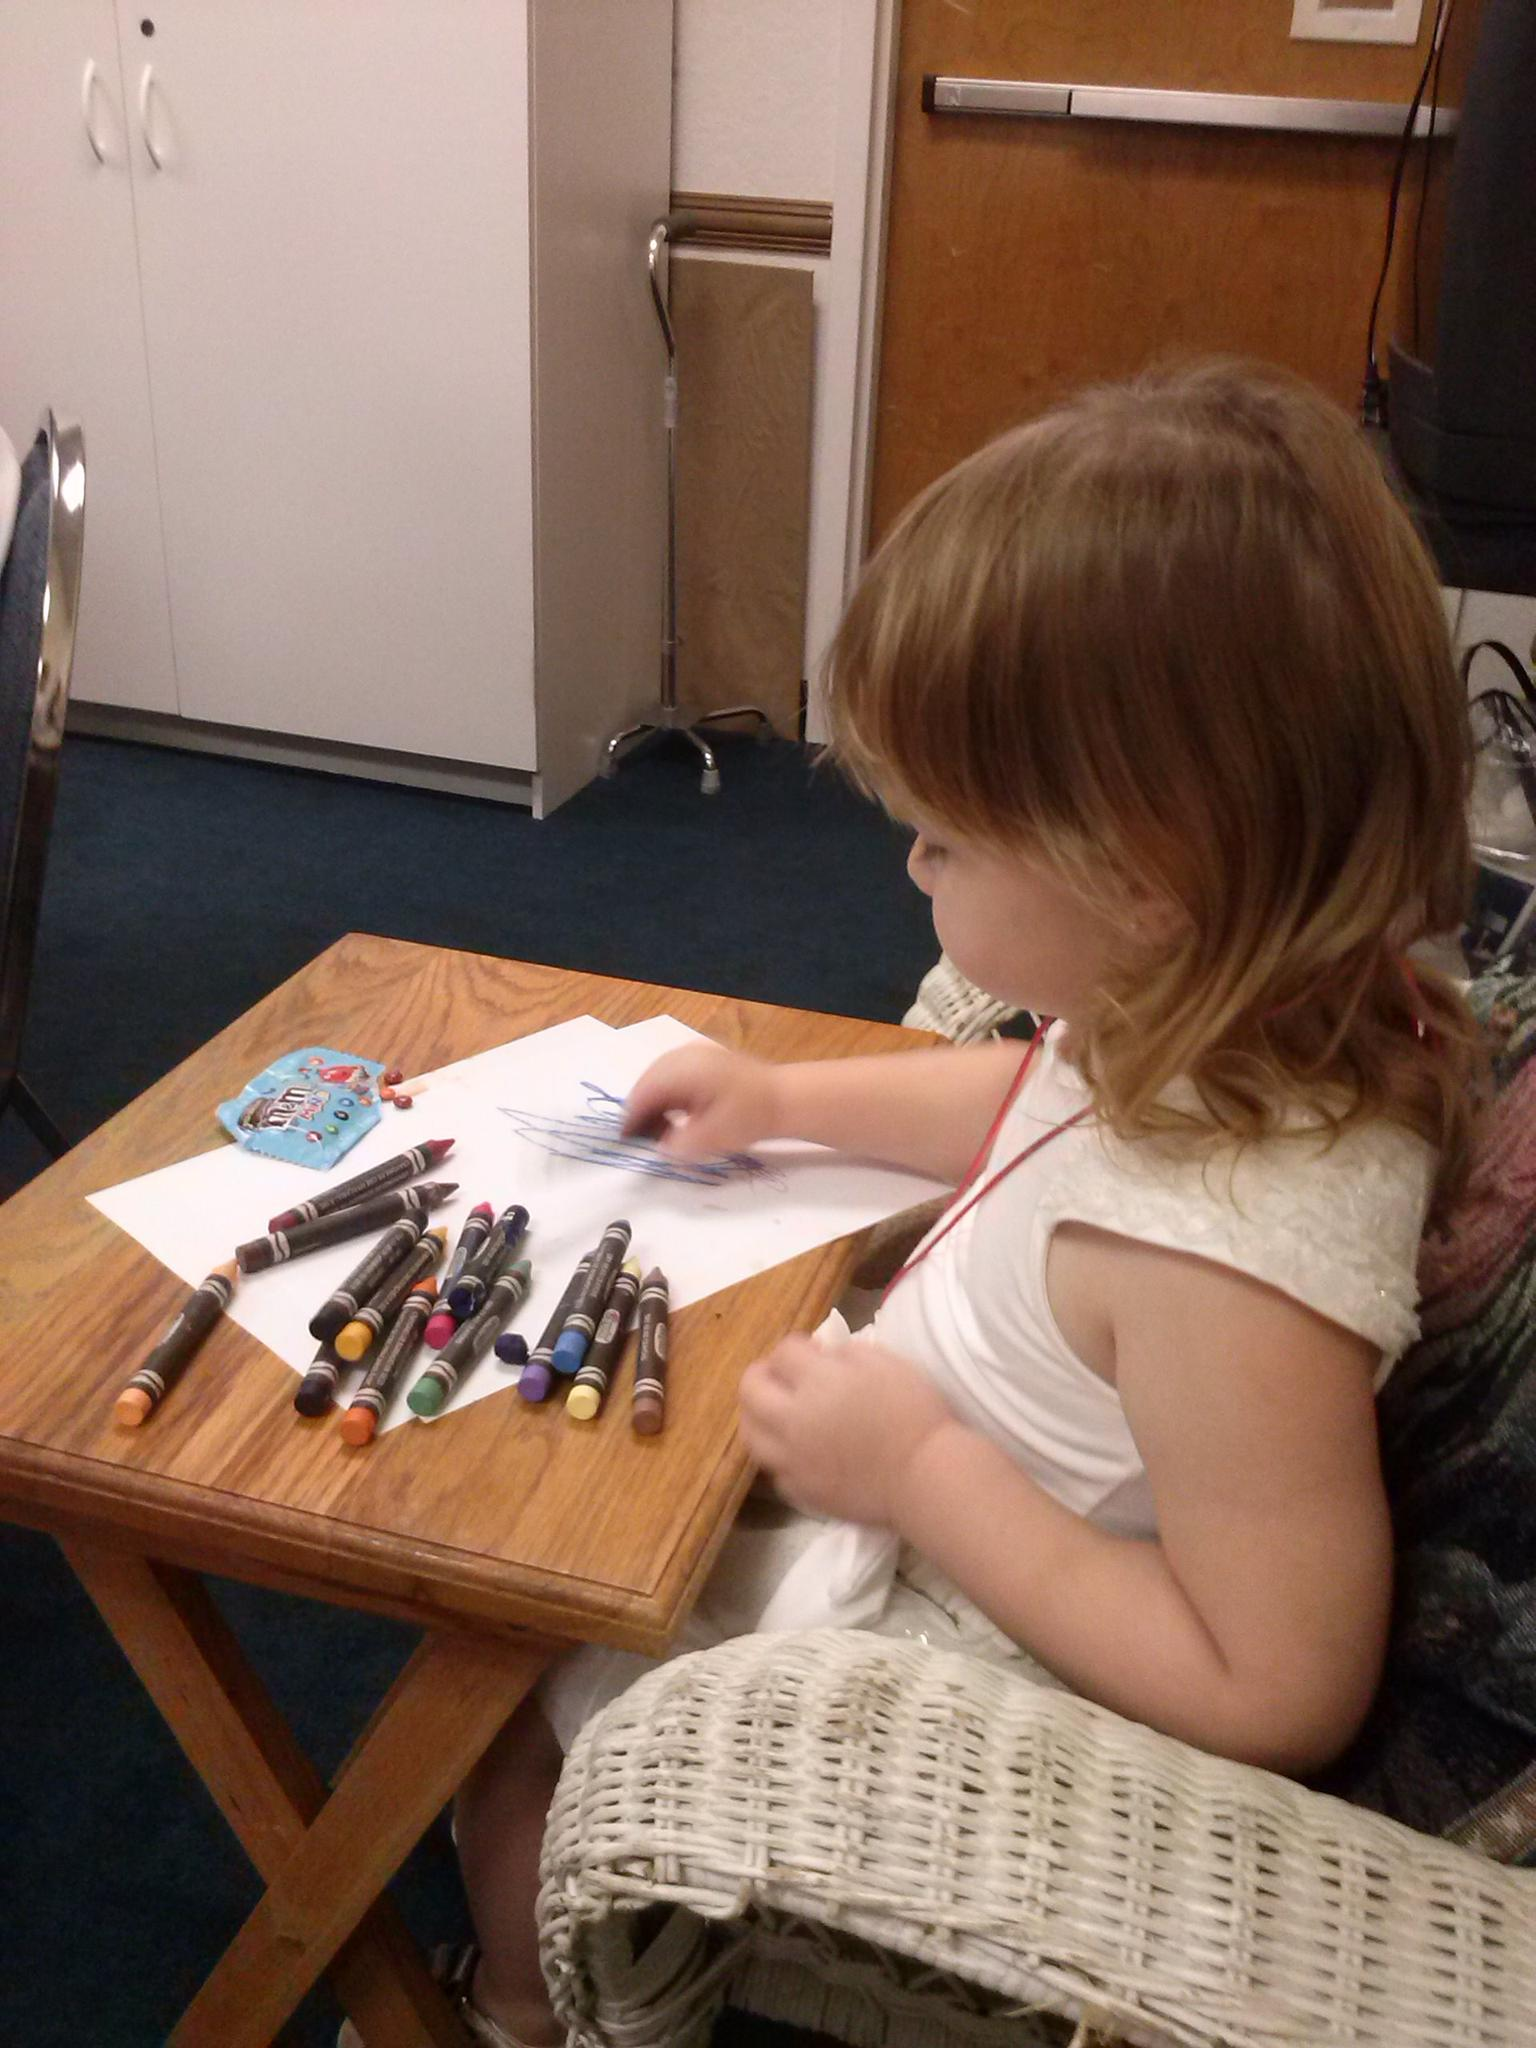 Future Artist by mary.keenantownsend